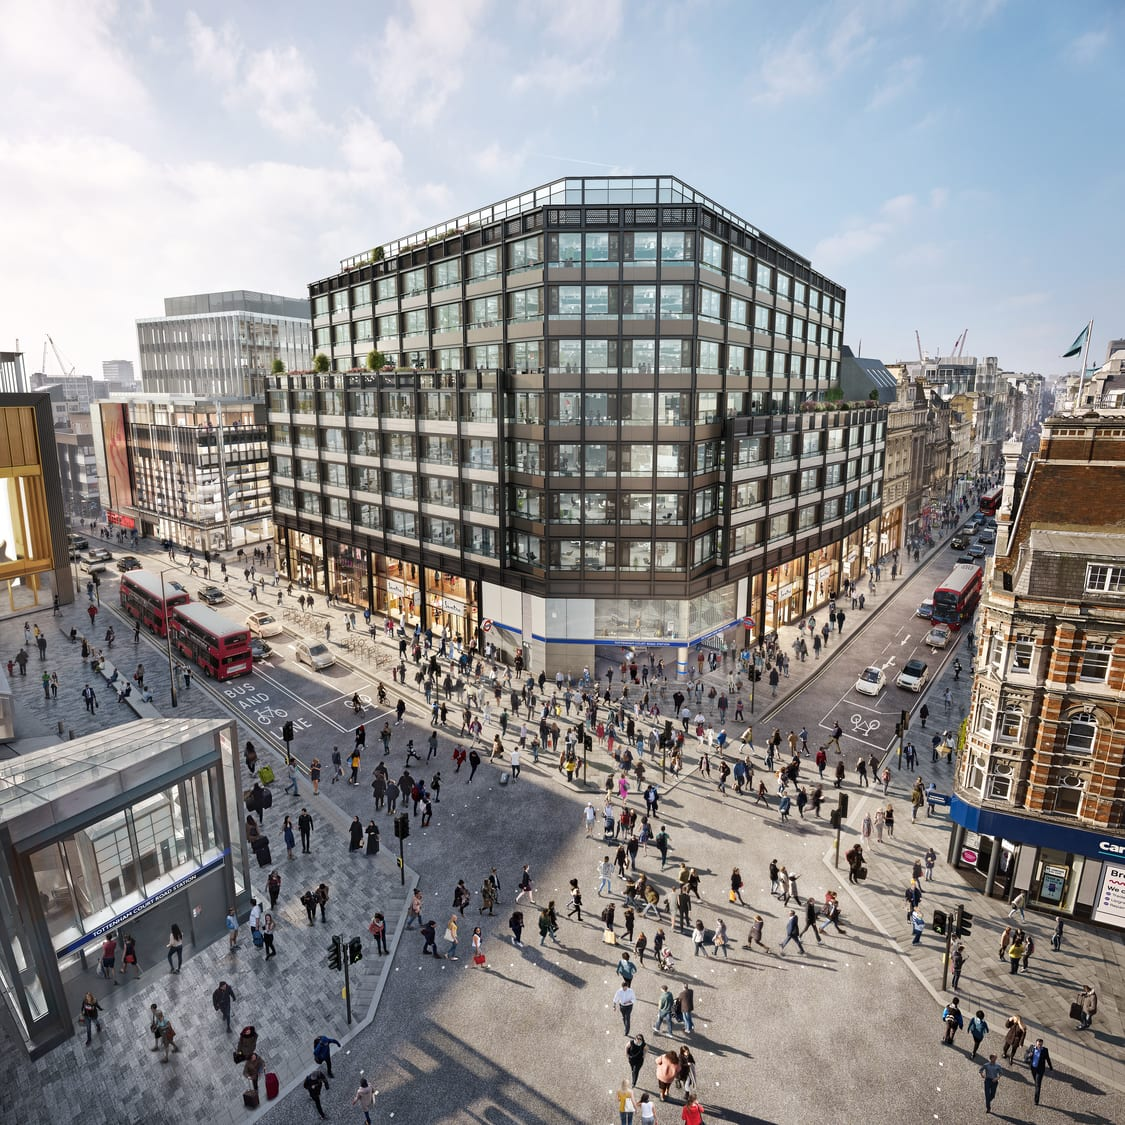 Over Site Development at Tottenham Court Rd